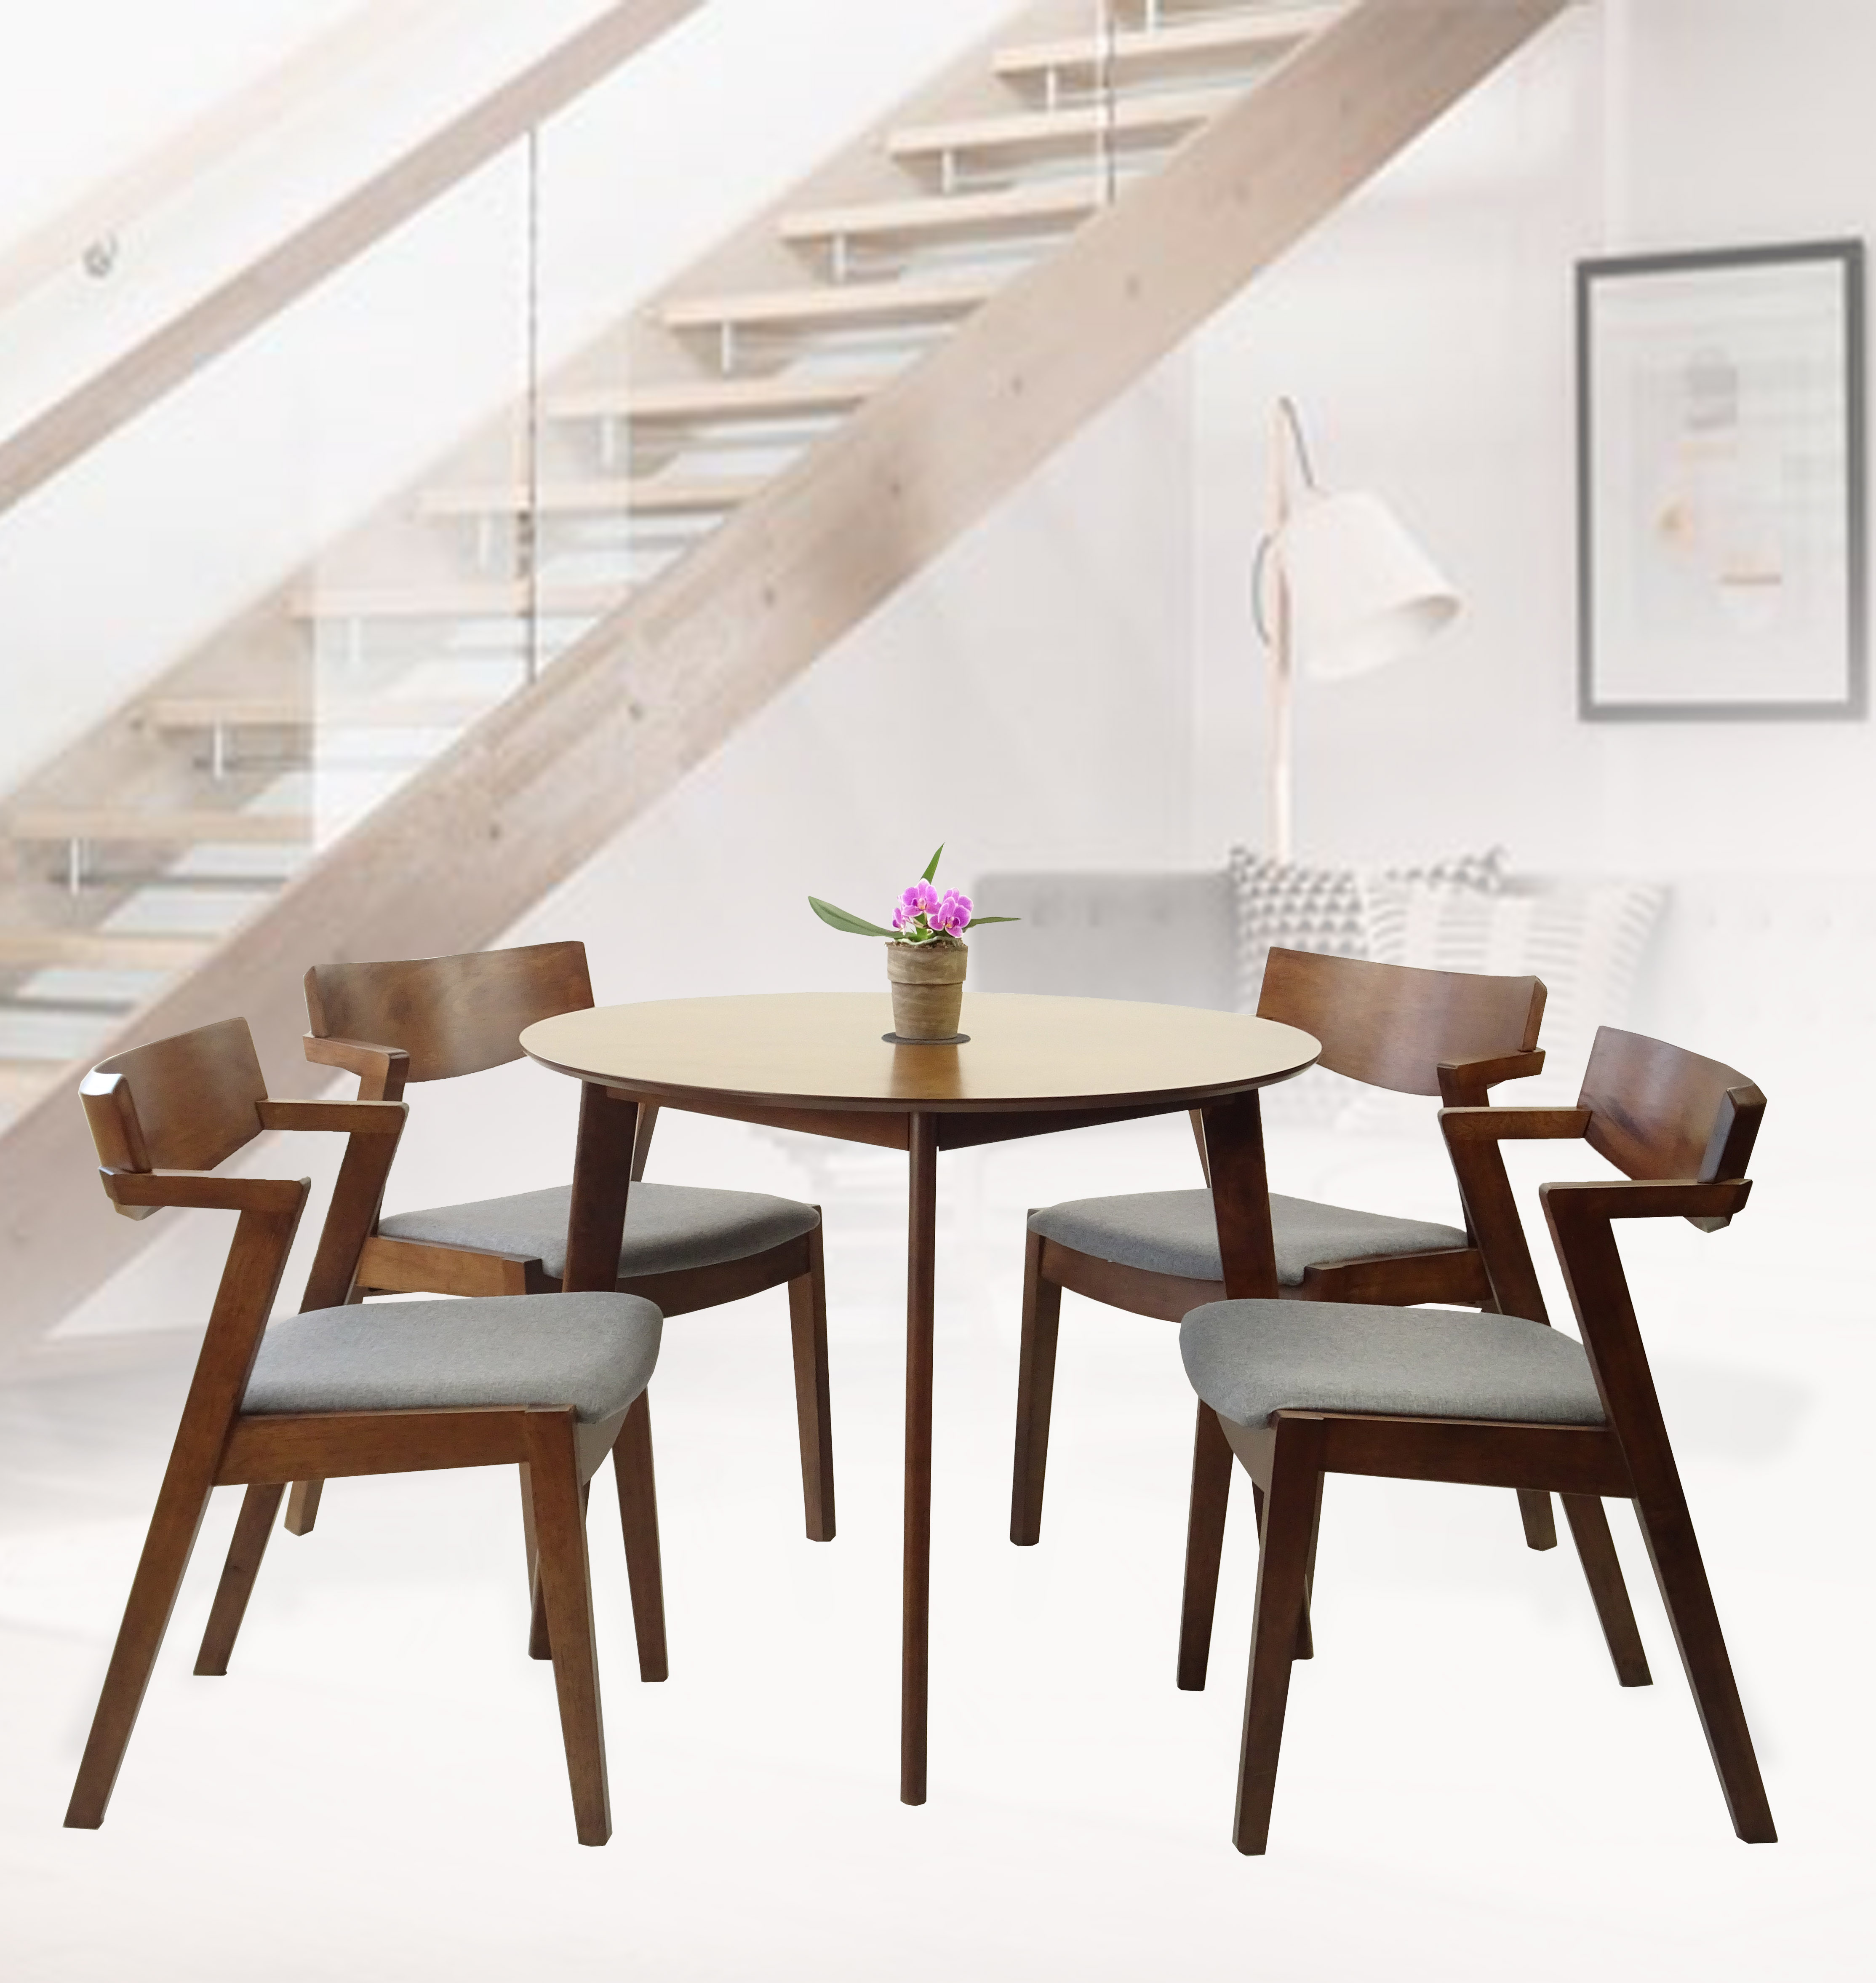 Rattan Wicker Furniture Set of 5 Dining Kitchen Round Table and 4 Tracy  Armchairs Solid Wood w/Padded Seat Medium Brown